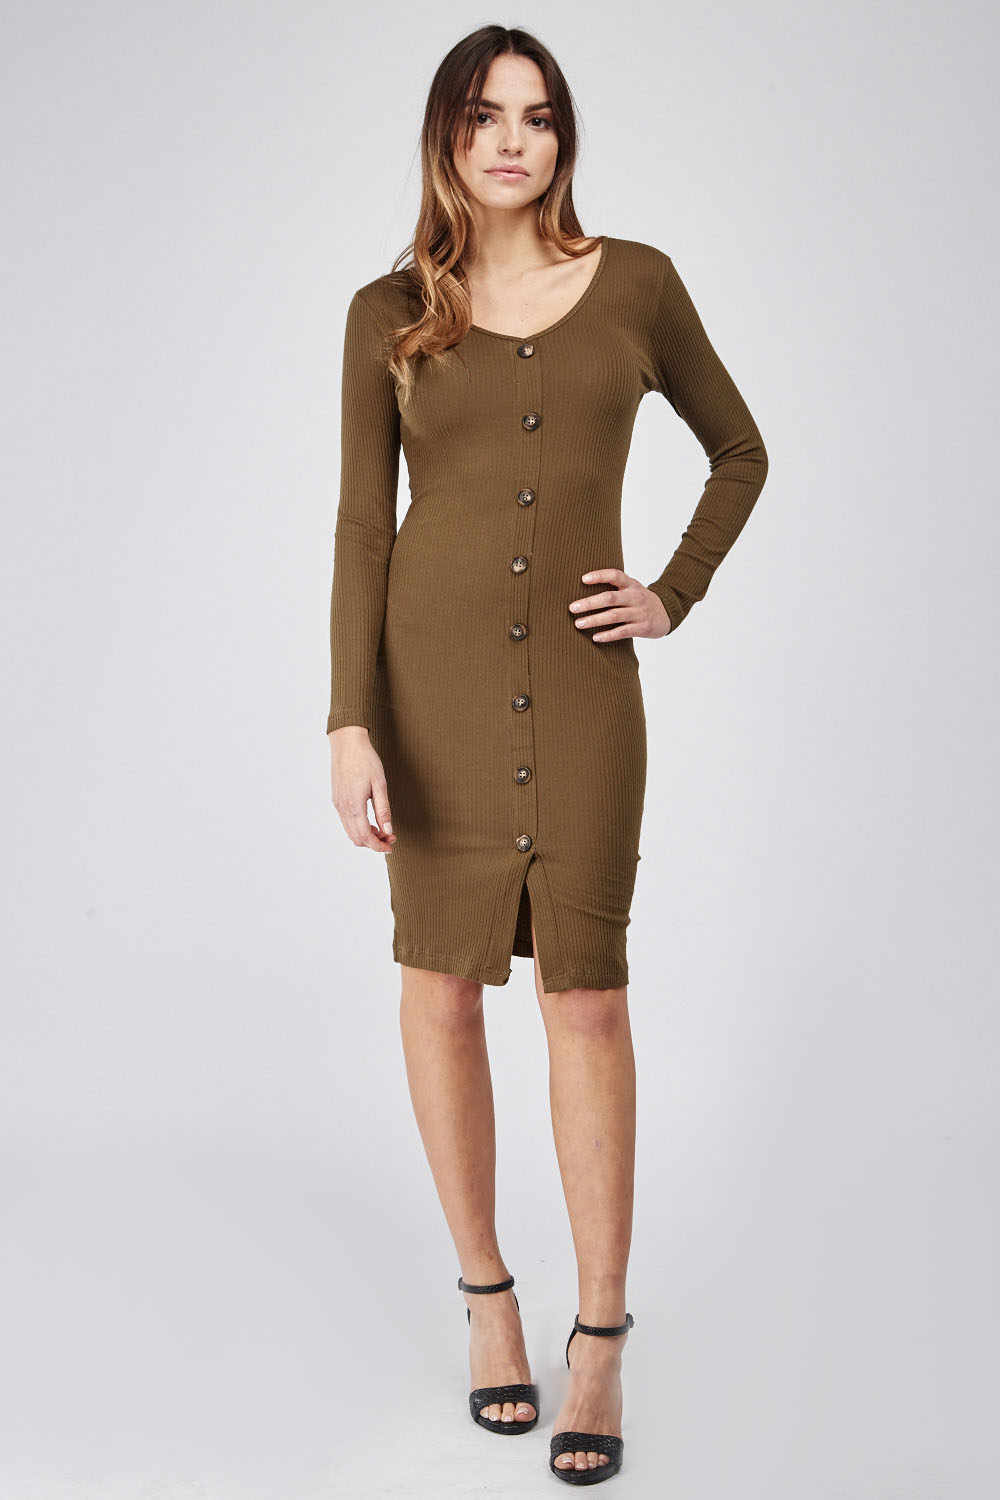 c00705cc899 Button Front Mini Ribbed Dress - Just £5